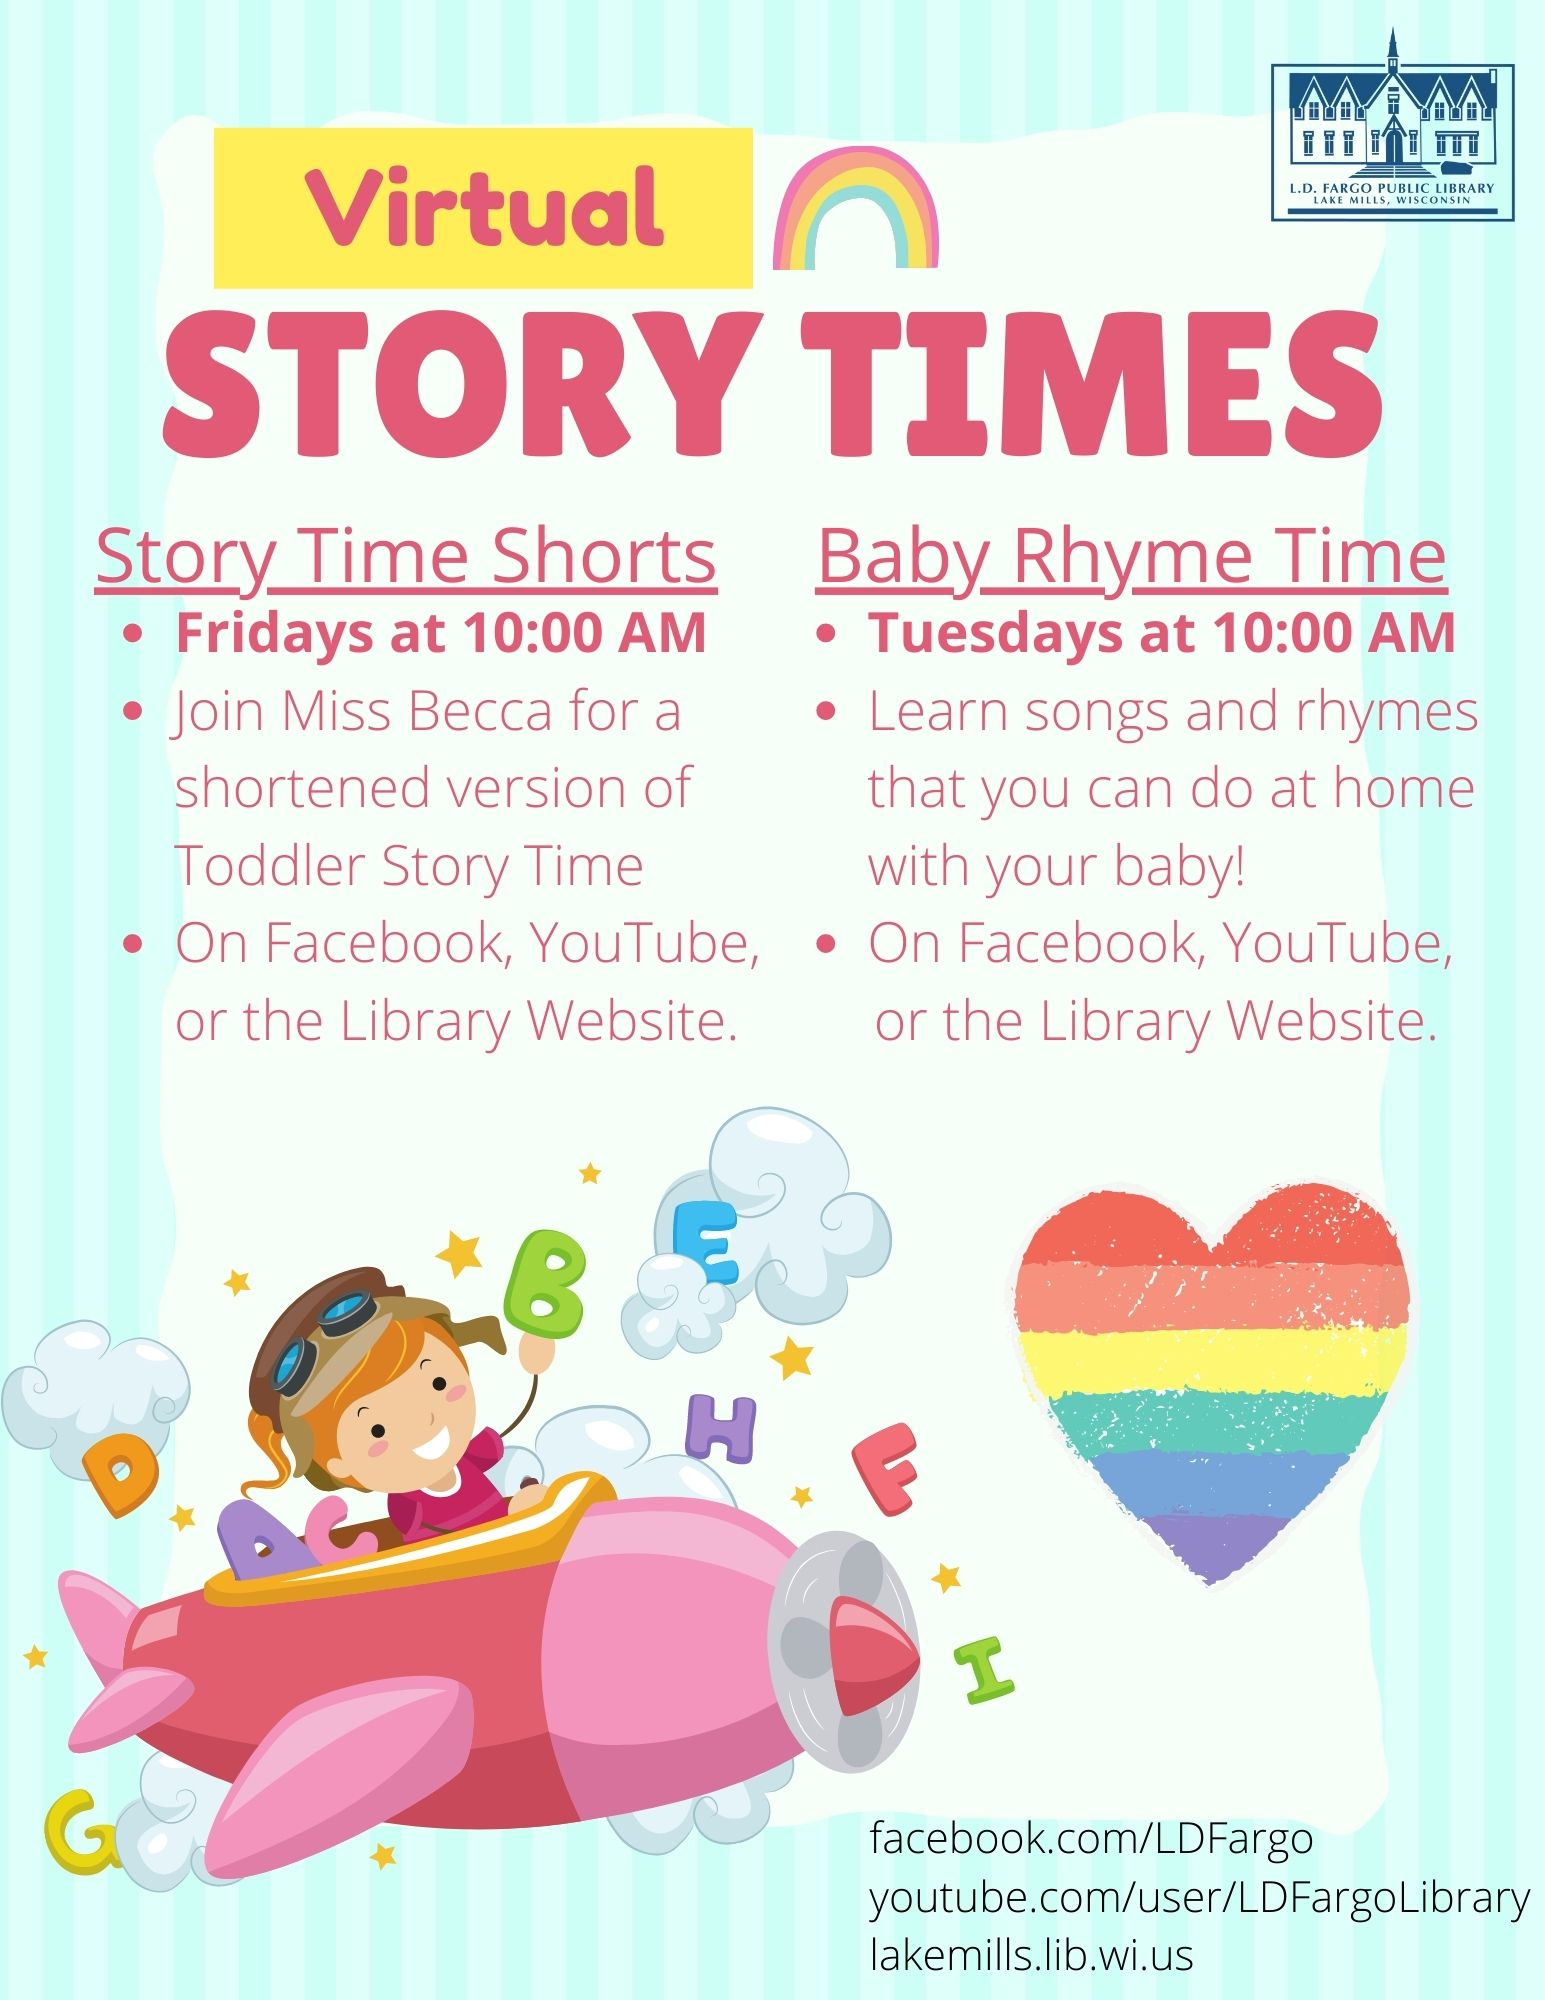 Story Time Shorts: Fridays at 10:00 AM Join Miss Becca for a shortened version of Toddler Story Time On Facebook, YouTube, or the Library Website. Baby Rhyme Time: Tuesdays at 10:00 AM Learn songs and rhymes that you can do at home with your baby! On Facebook, YouTube, or the Library Website.